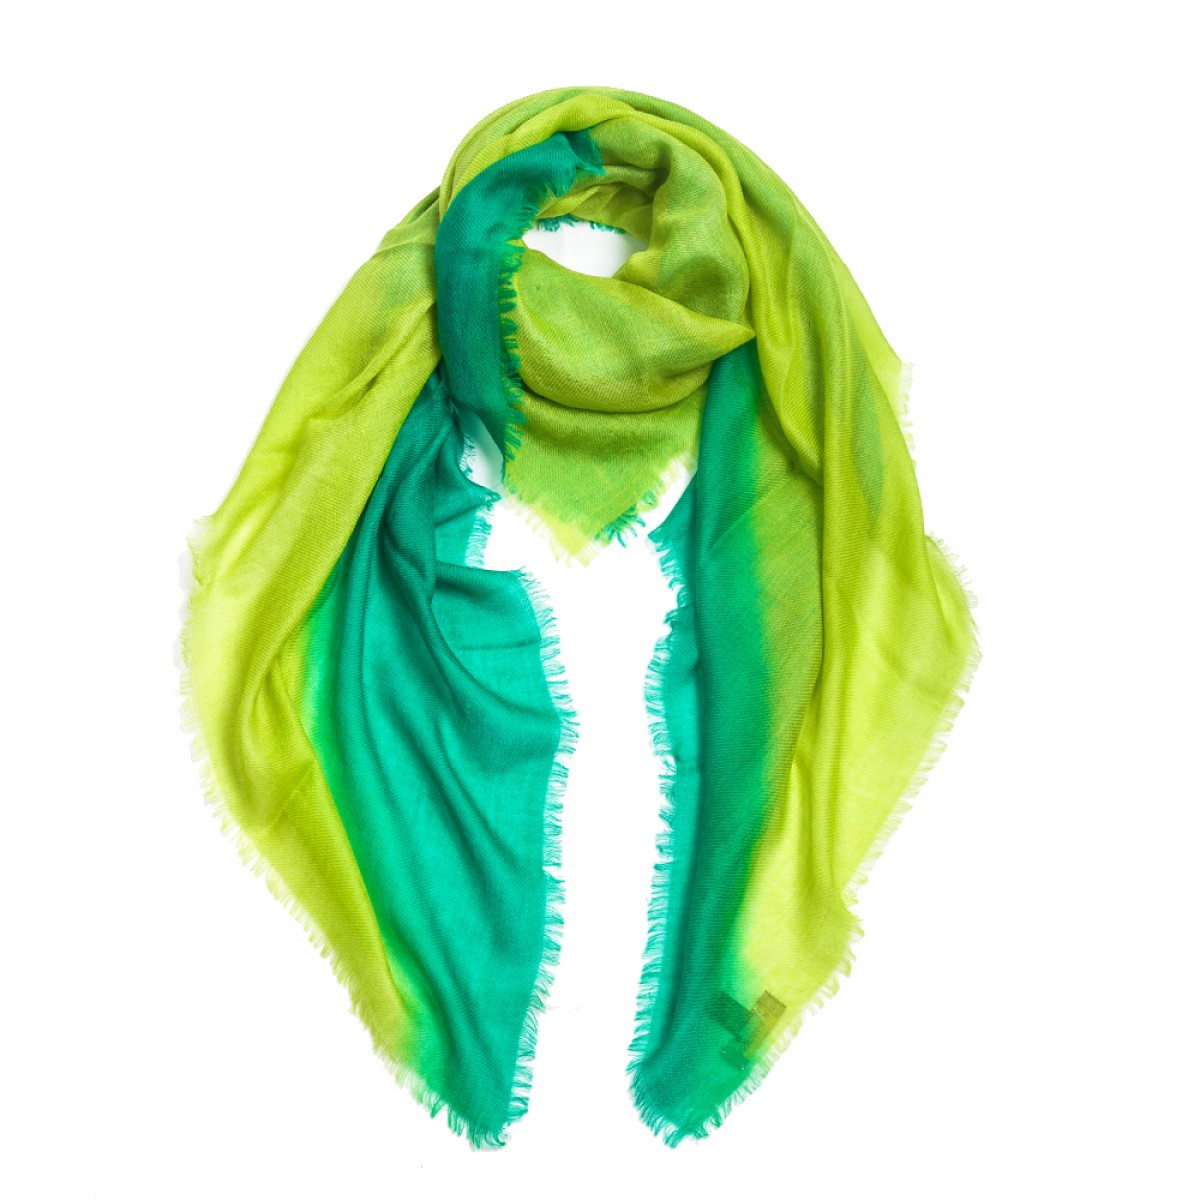 Ombre Pashmina Stole - Angela Emerald Green